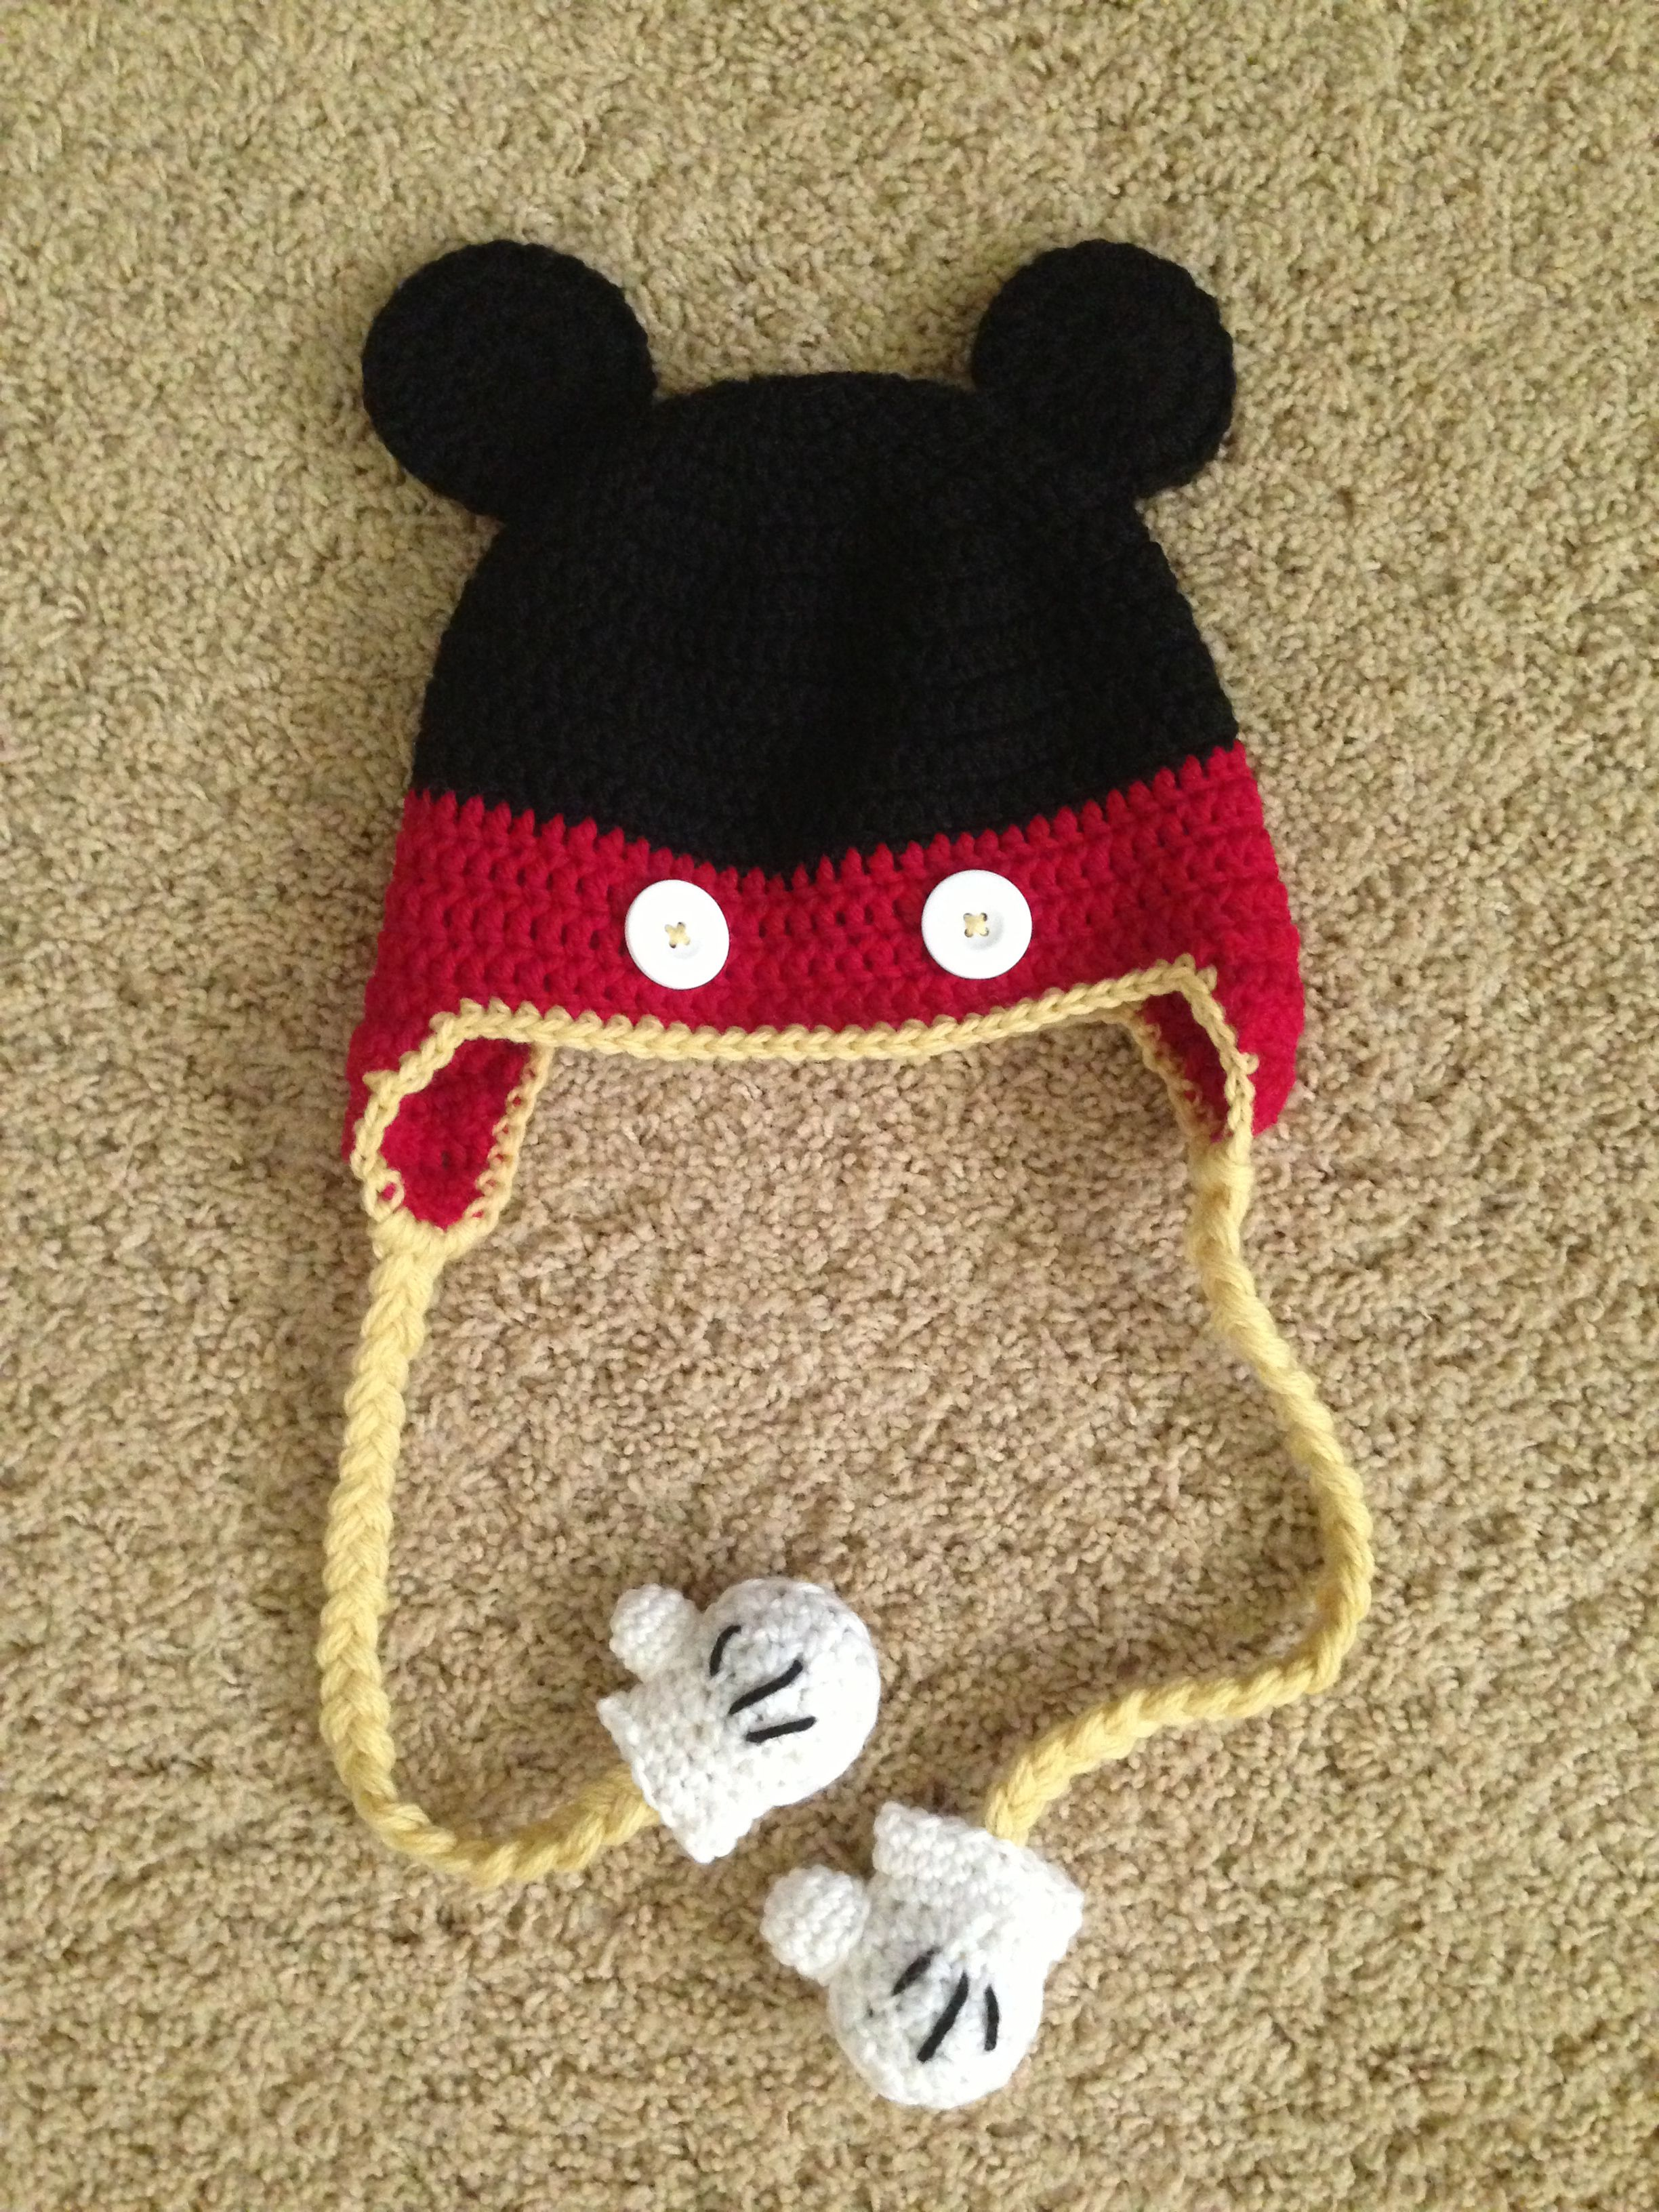 dd71aae85b5b Crochet Mickey Mouse hat. It's the mitten detail that's the winner ...